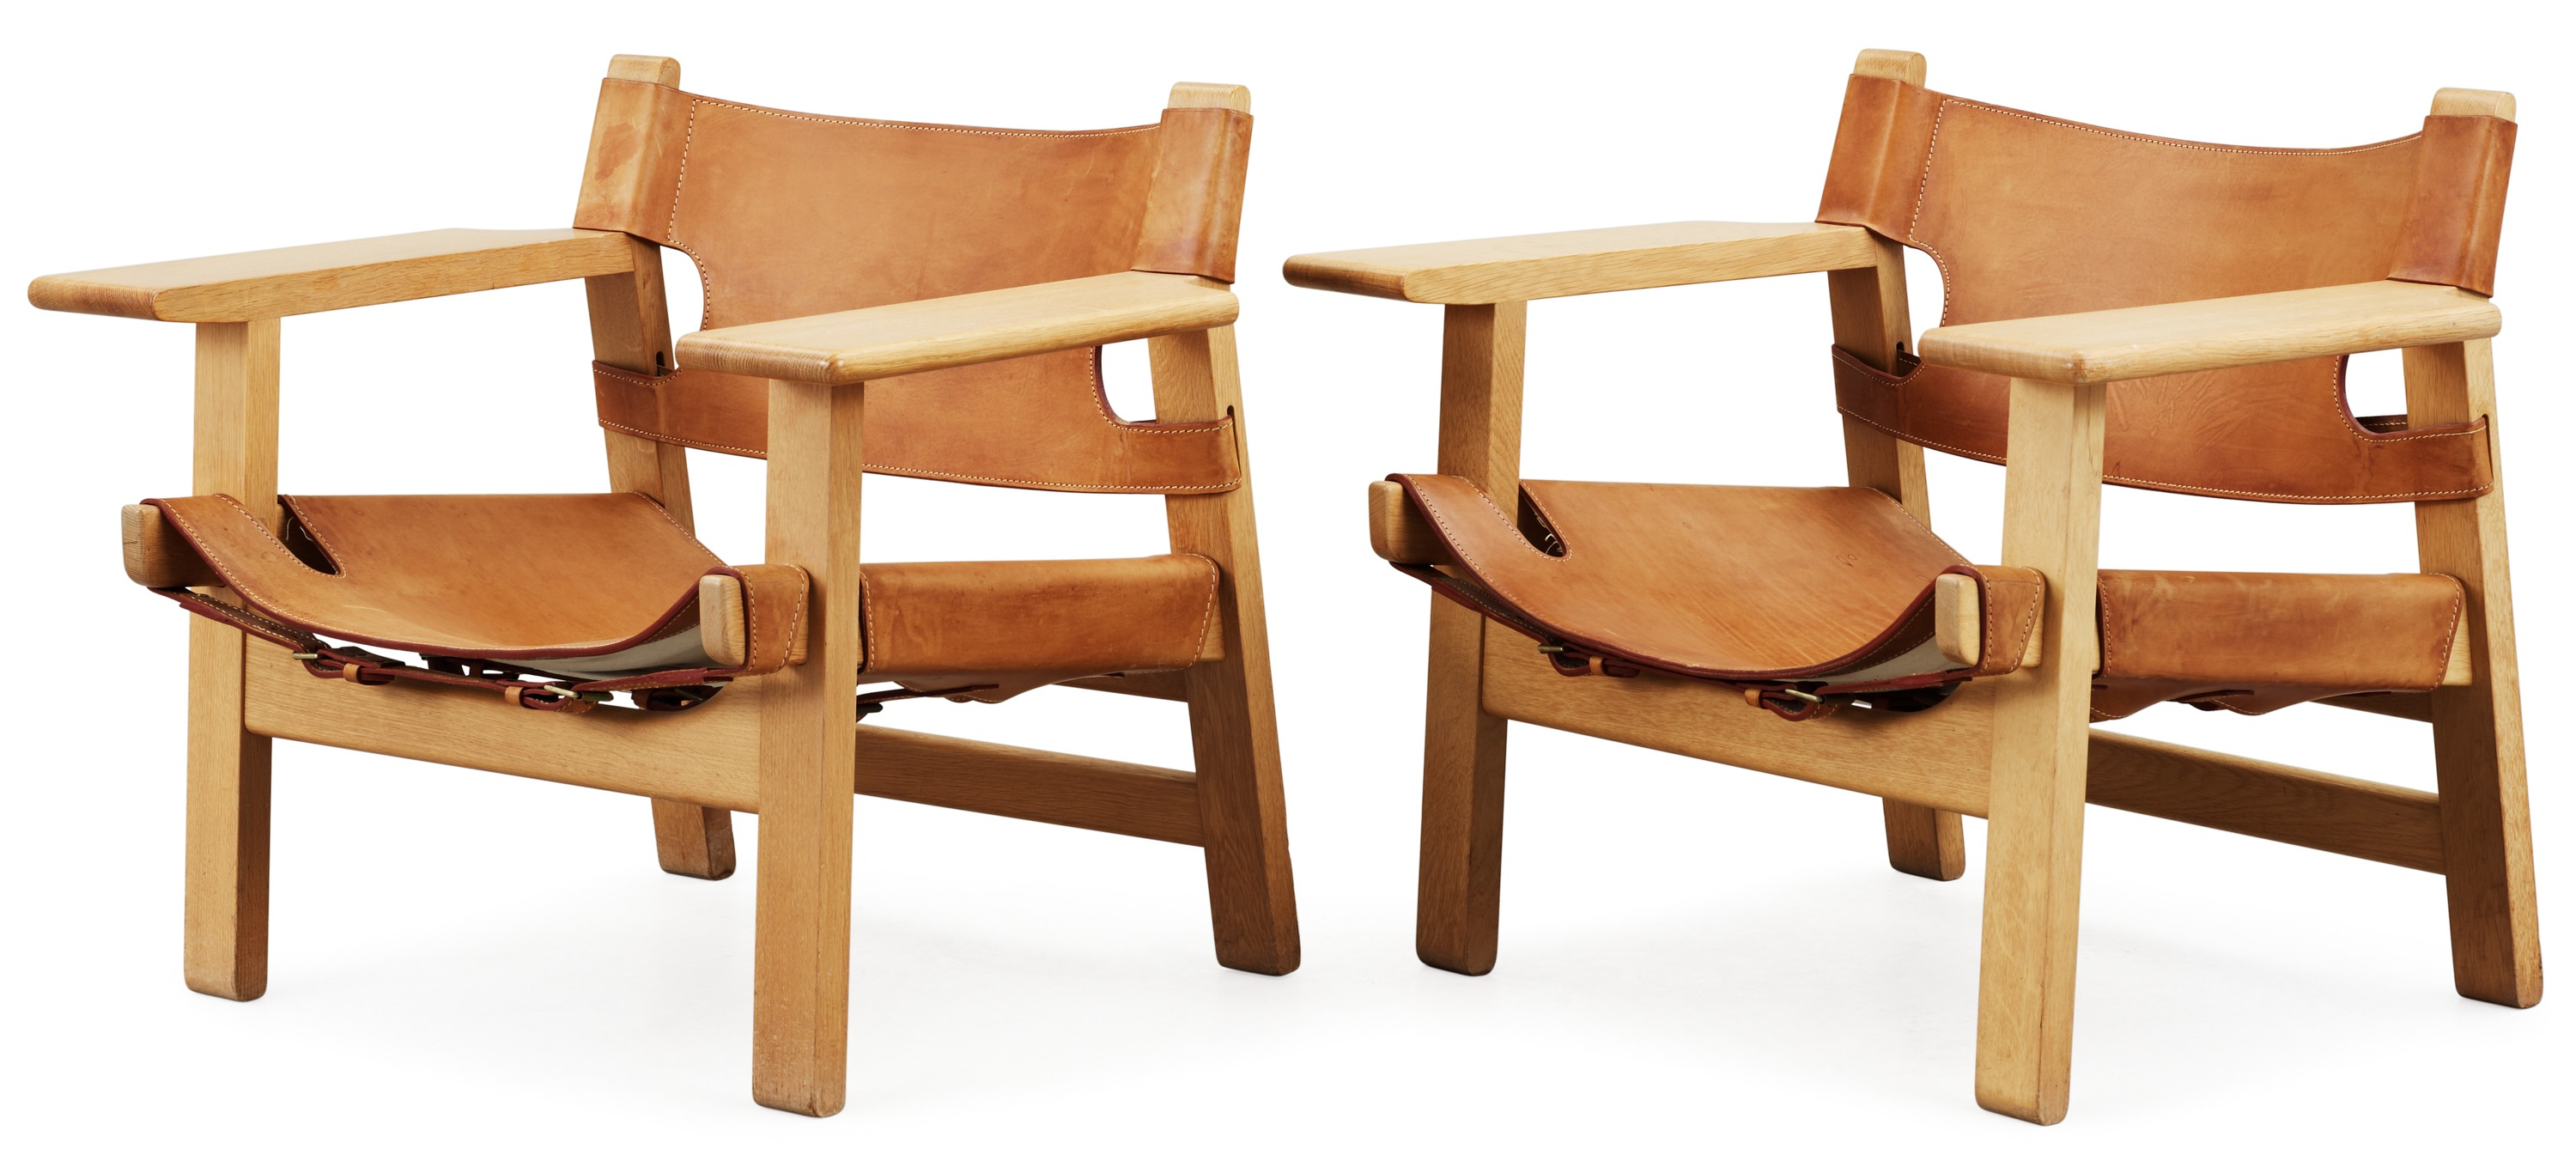 A pair of B¸rge Mogensen The Spanish Chair in oak and leather by